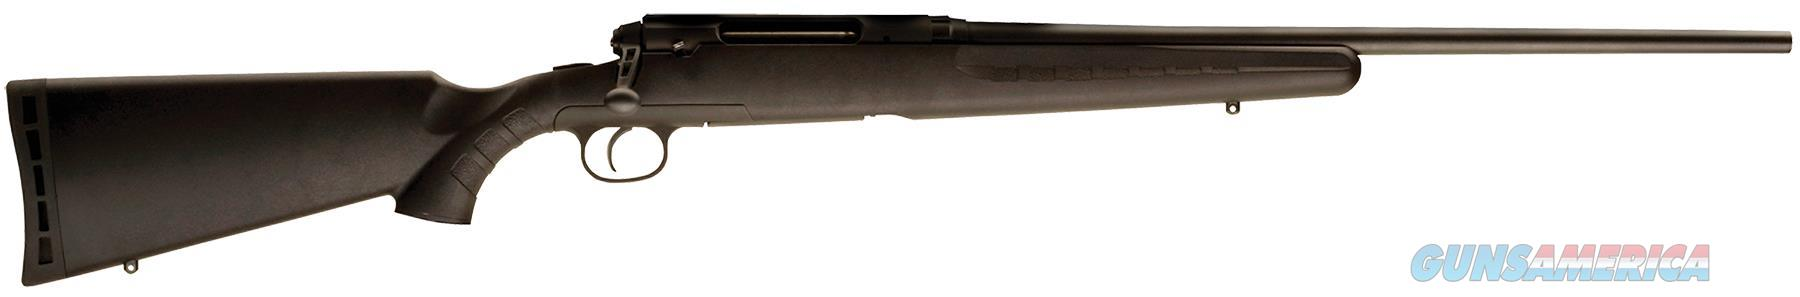 "SAVAGE ARMS AXIS 22250 22"" BLK 19221  Guns > Rifles > Savage Rifles > Standard Bolt Action > Sporting"